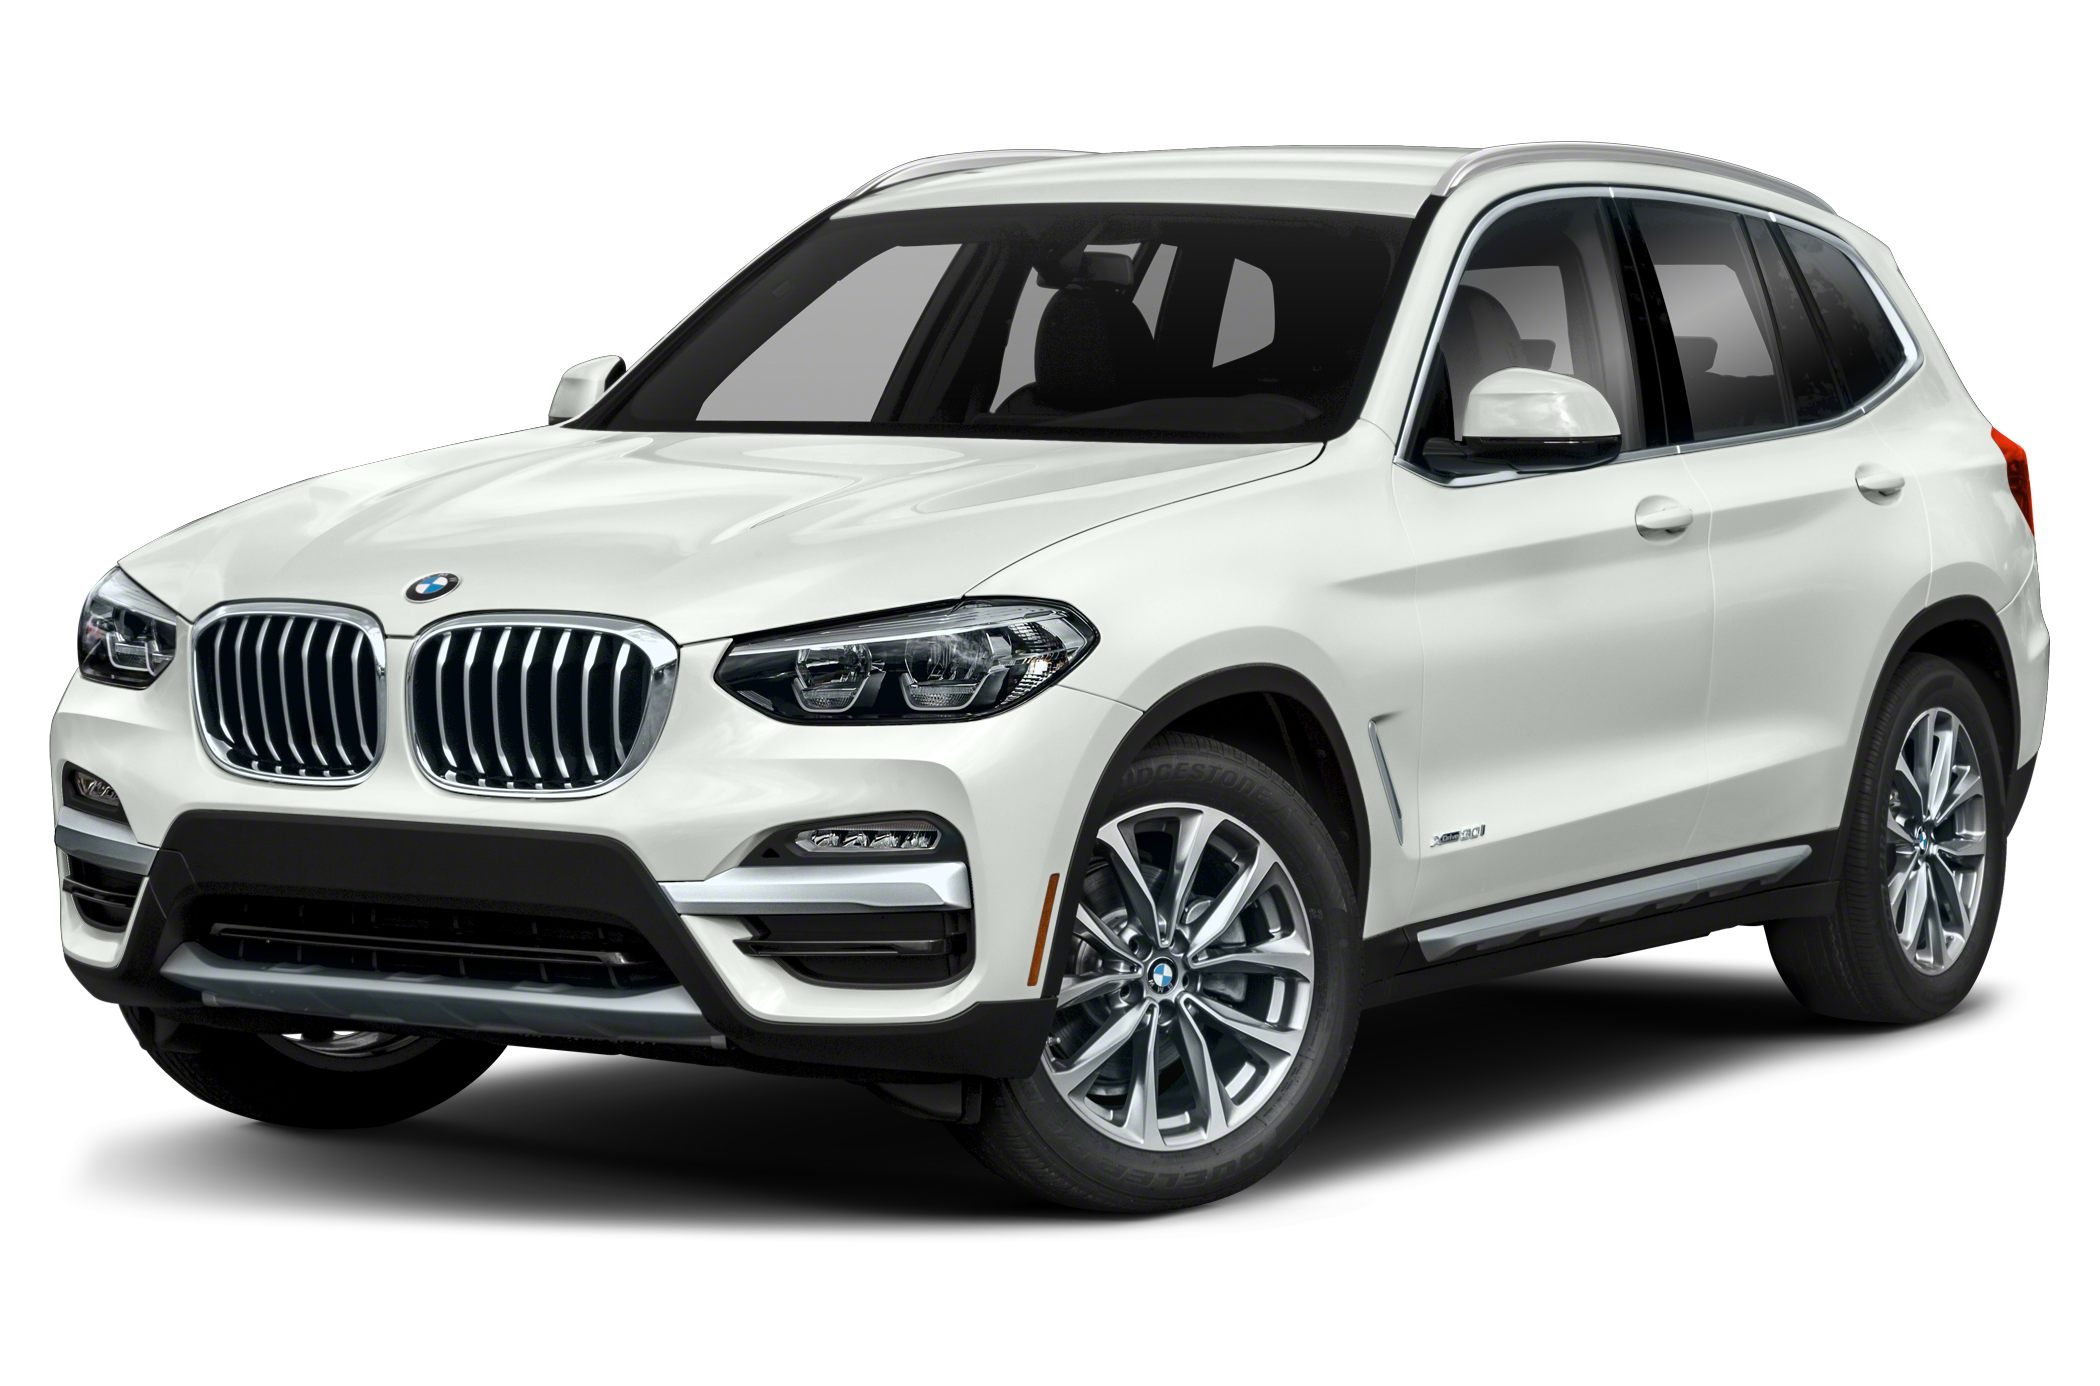 2020 Bmw X3 M40i 4dr All Wheel Drive Sports Activity Vehicle Specs And Prices